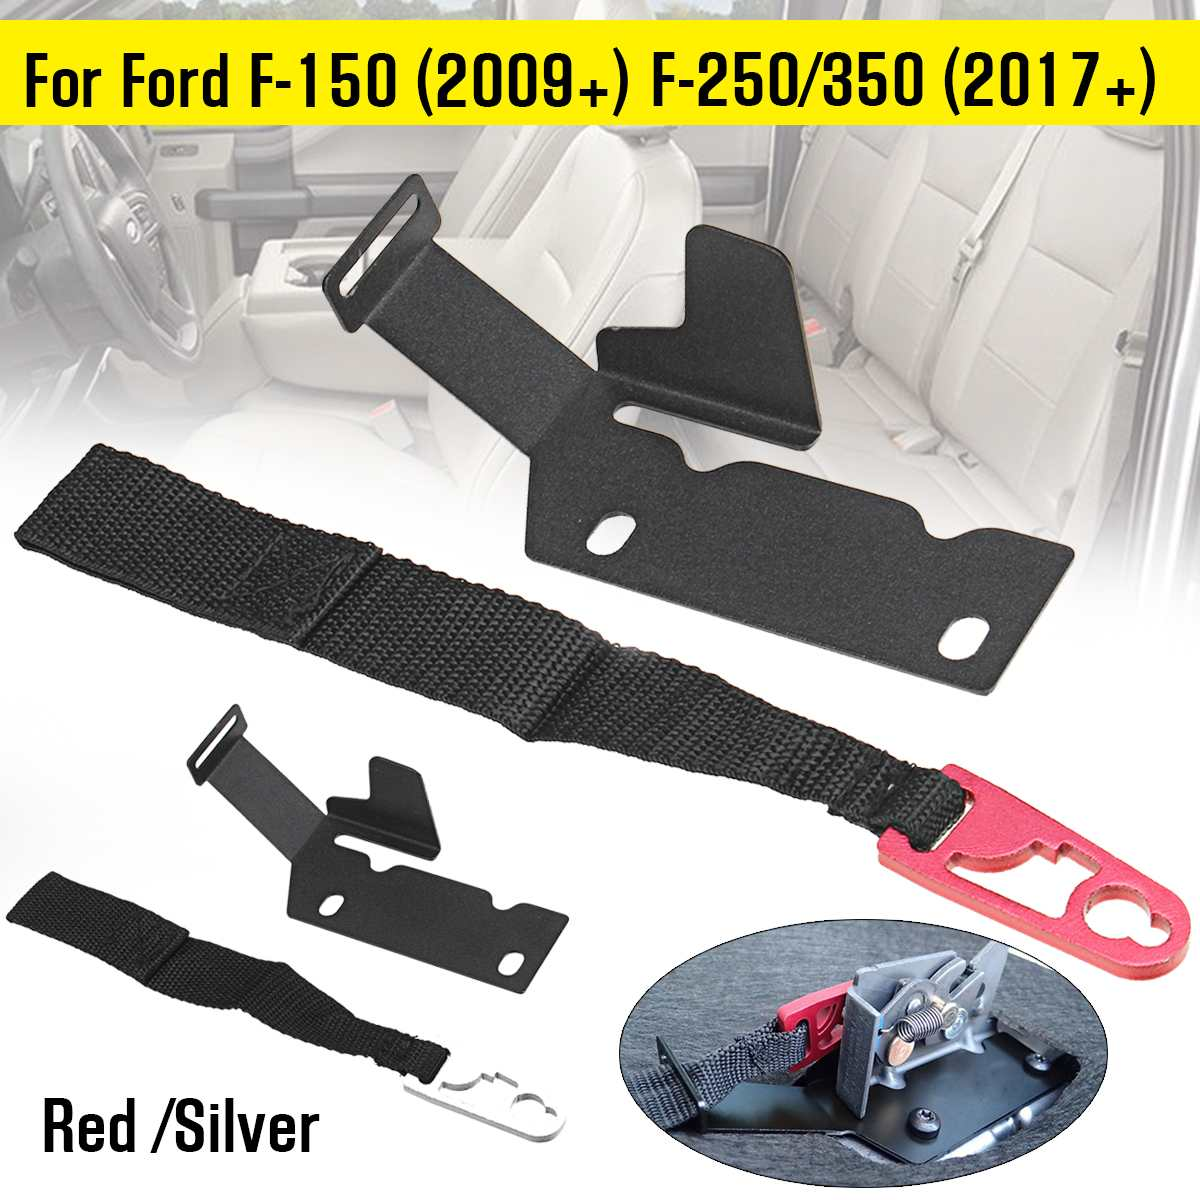 1Pair Rear Seat Release Strap Latch Kit Safety Belt For Ford F-150 (2009+) F-250/350 (2017+)